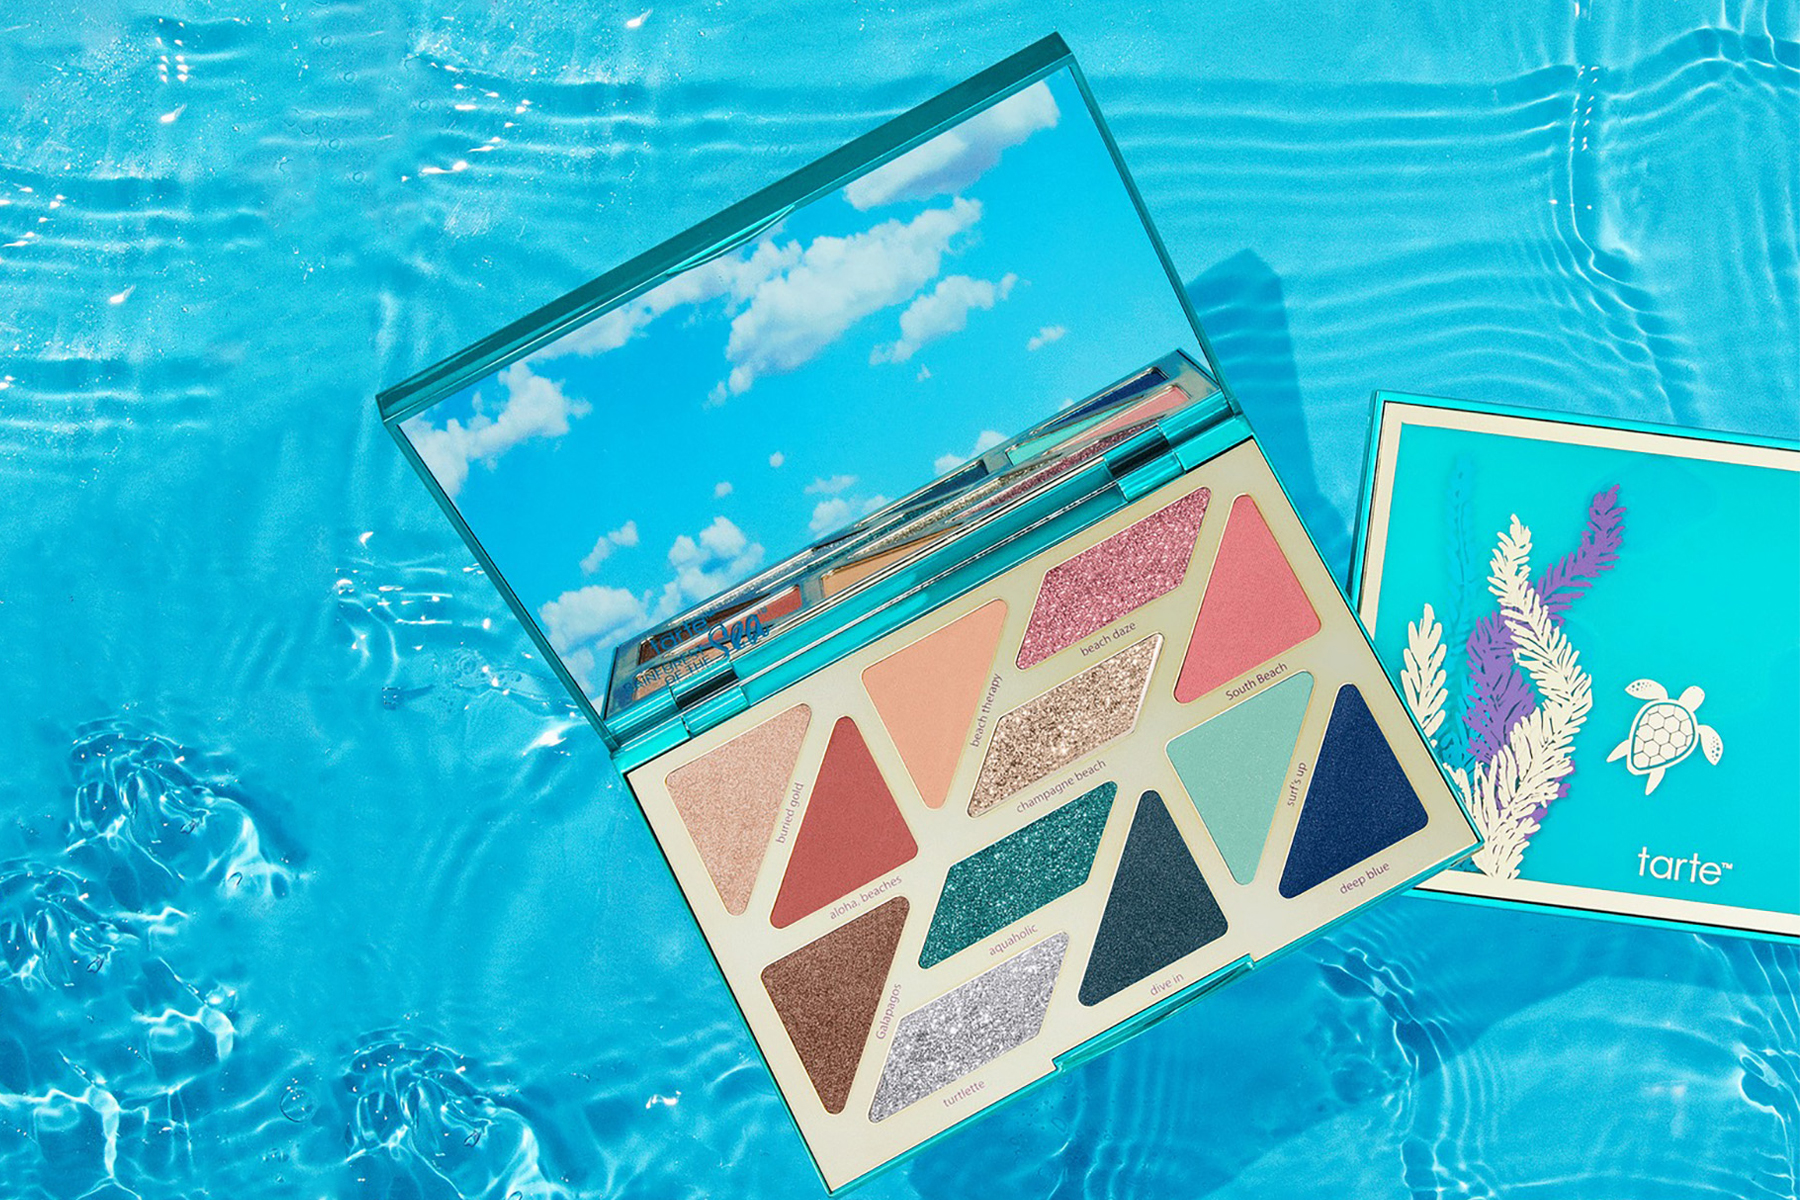 Tarte high tides good vibes avis